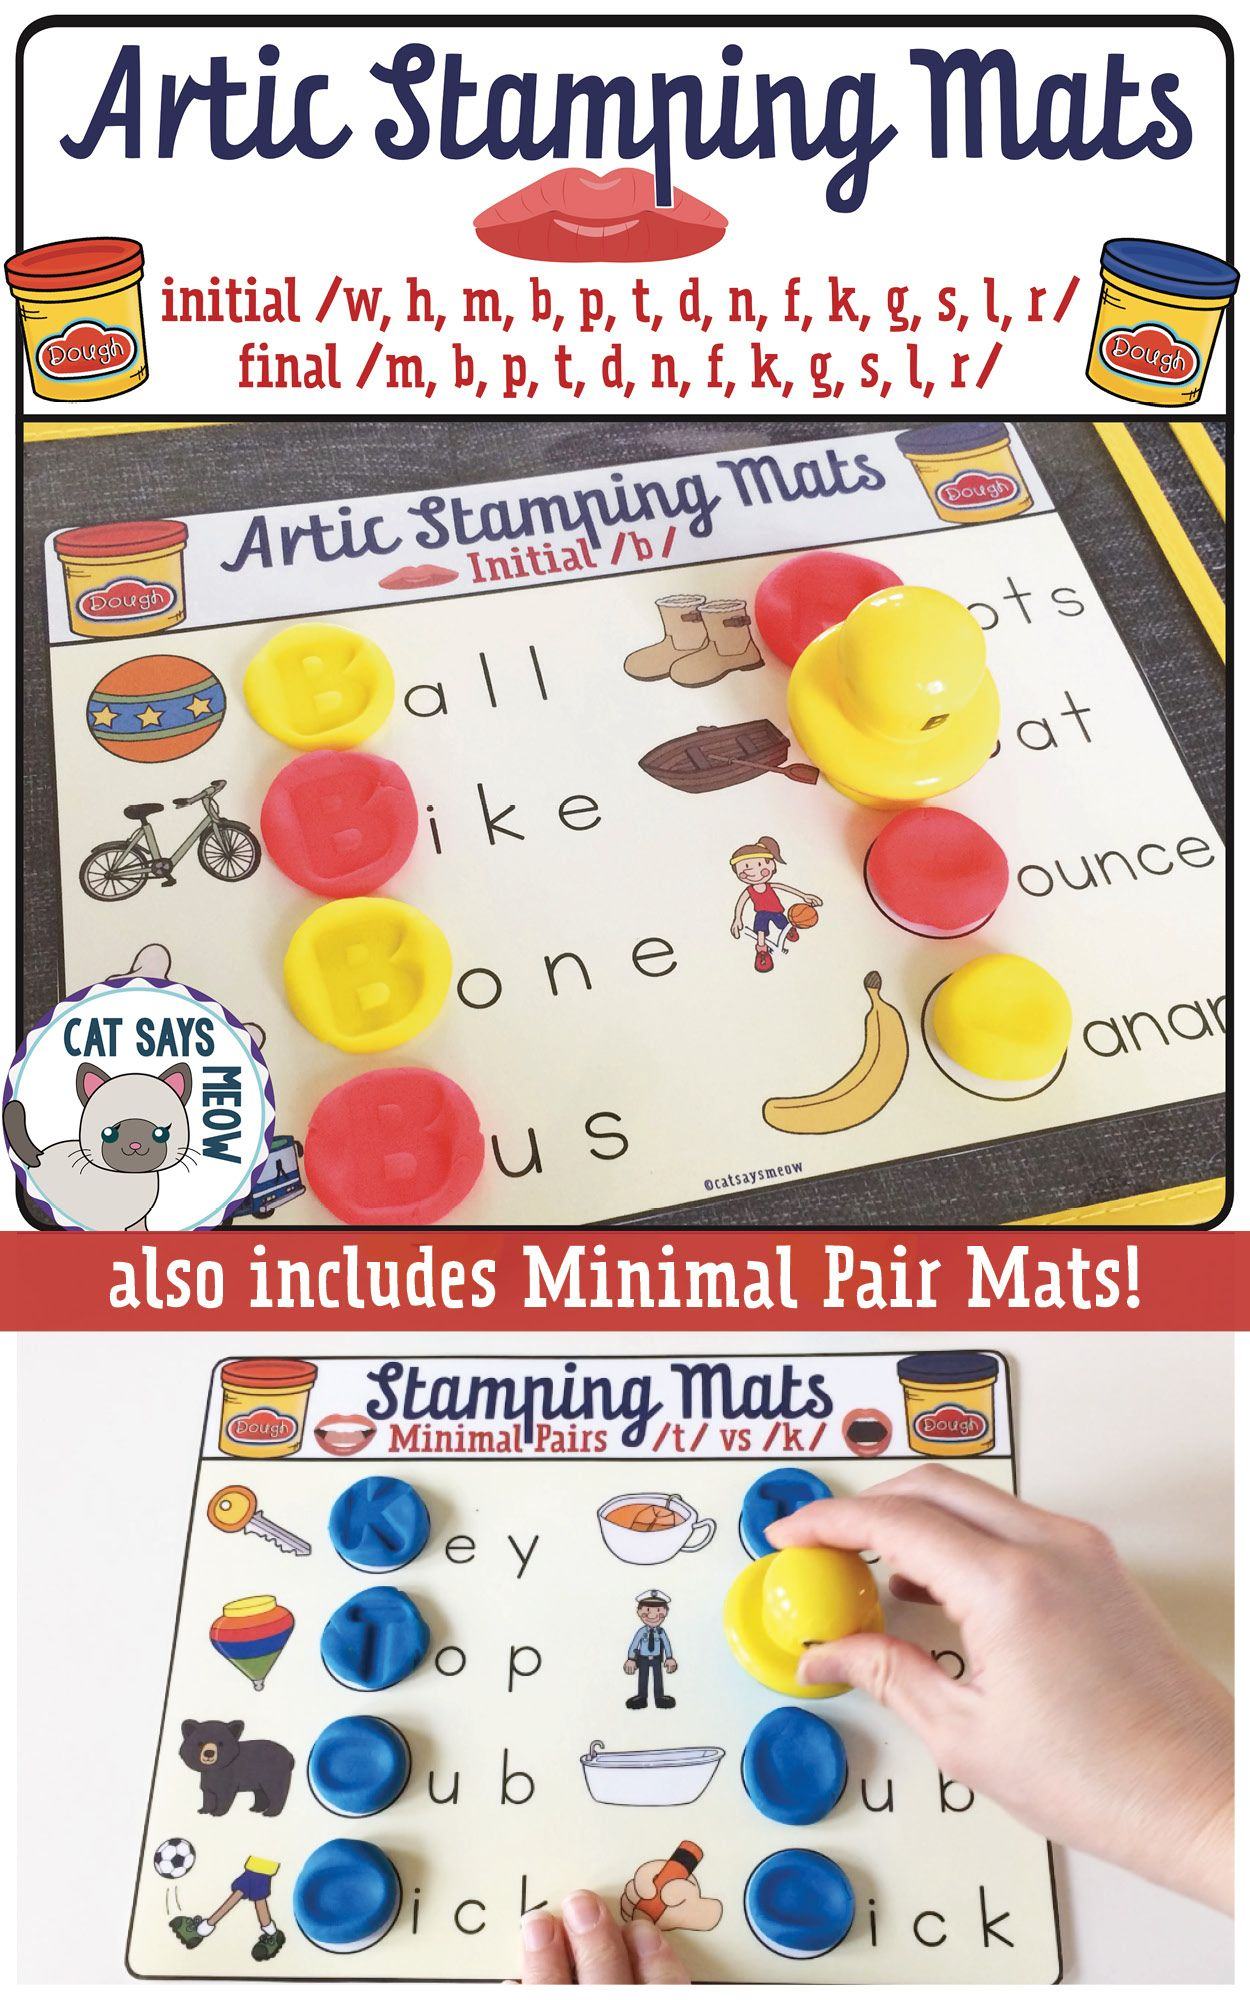 Artic Stamping Mats Letter Stamping Dough Mats Minimal